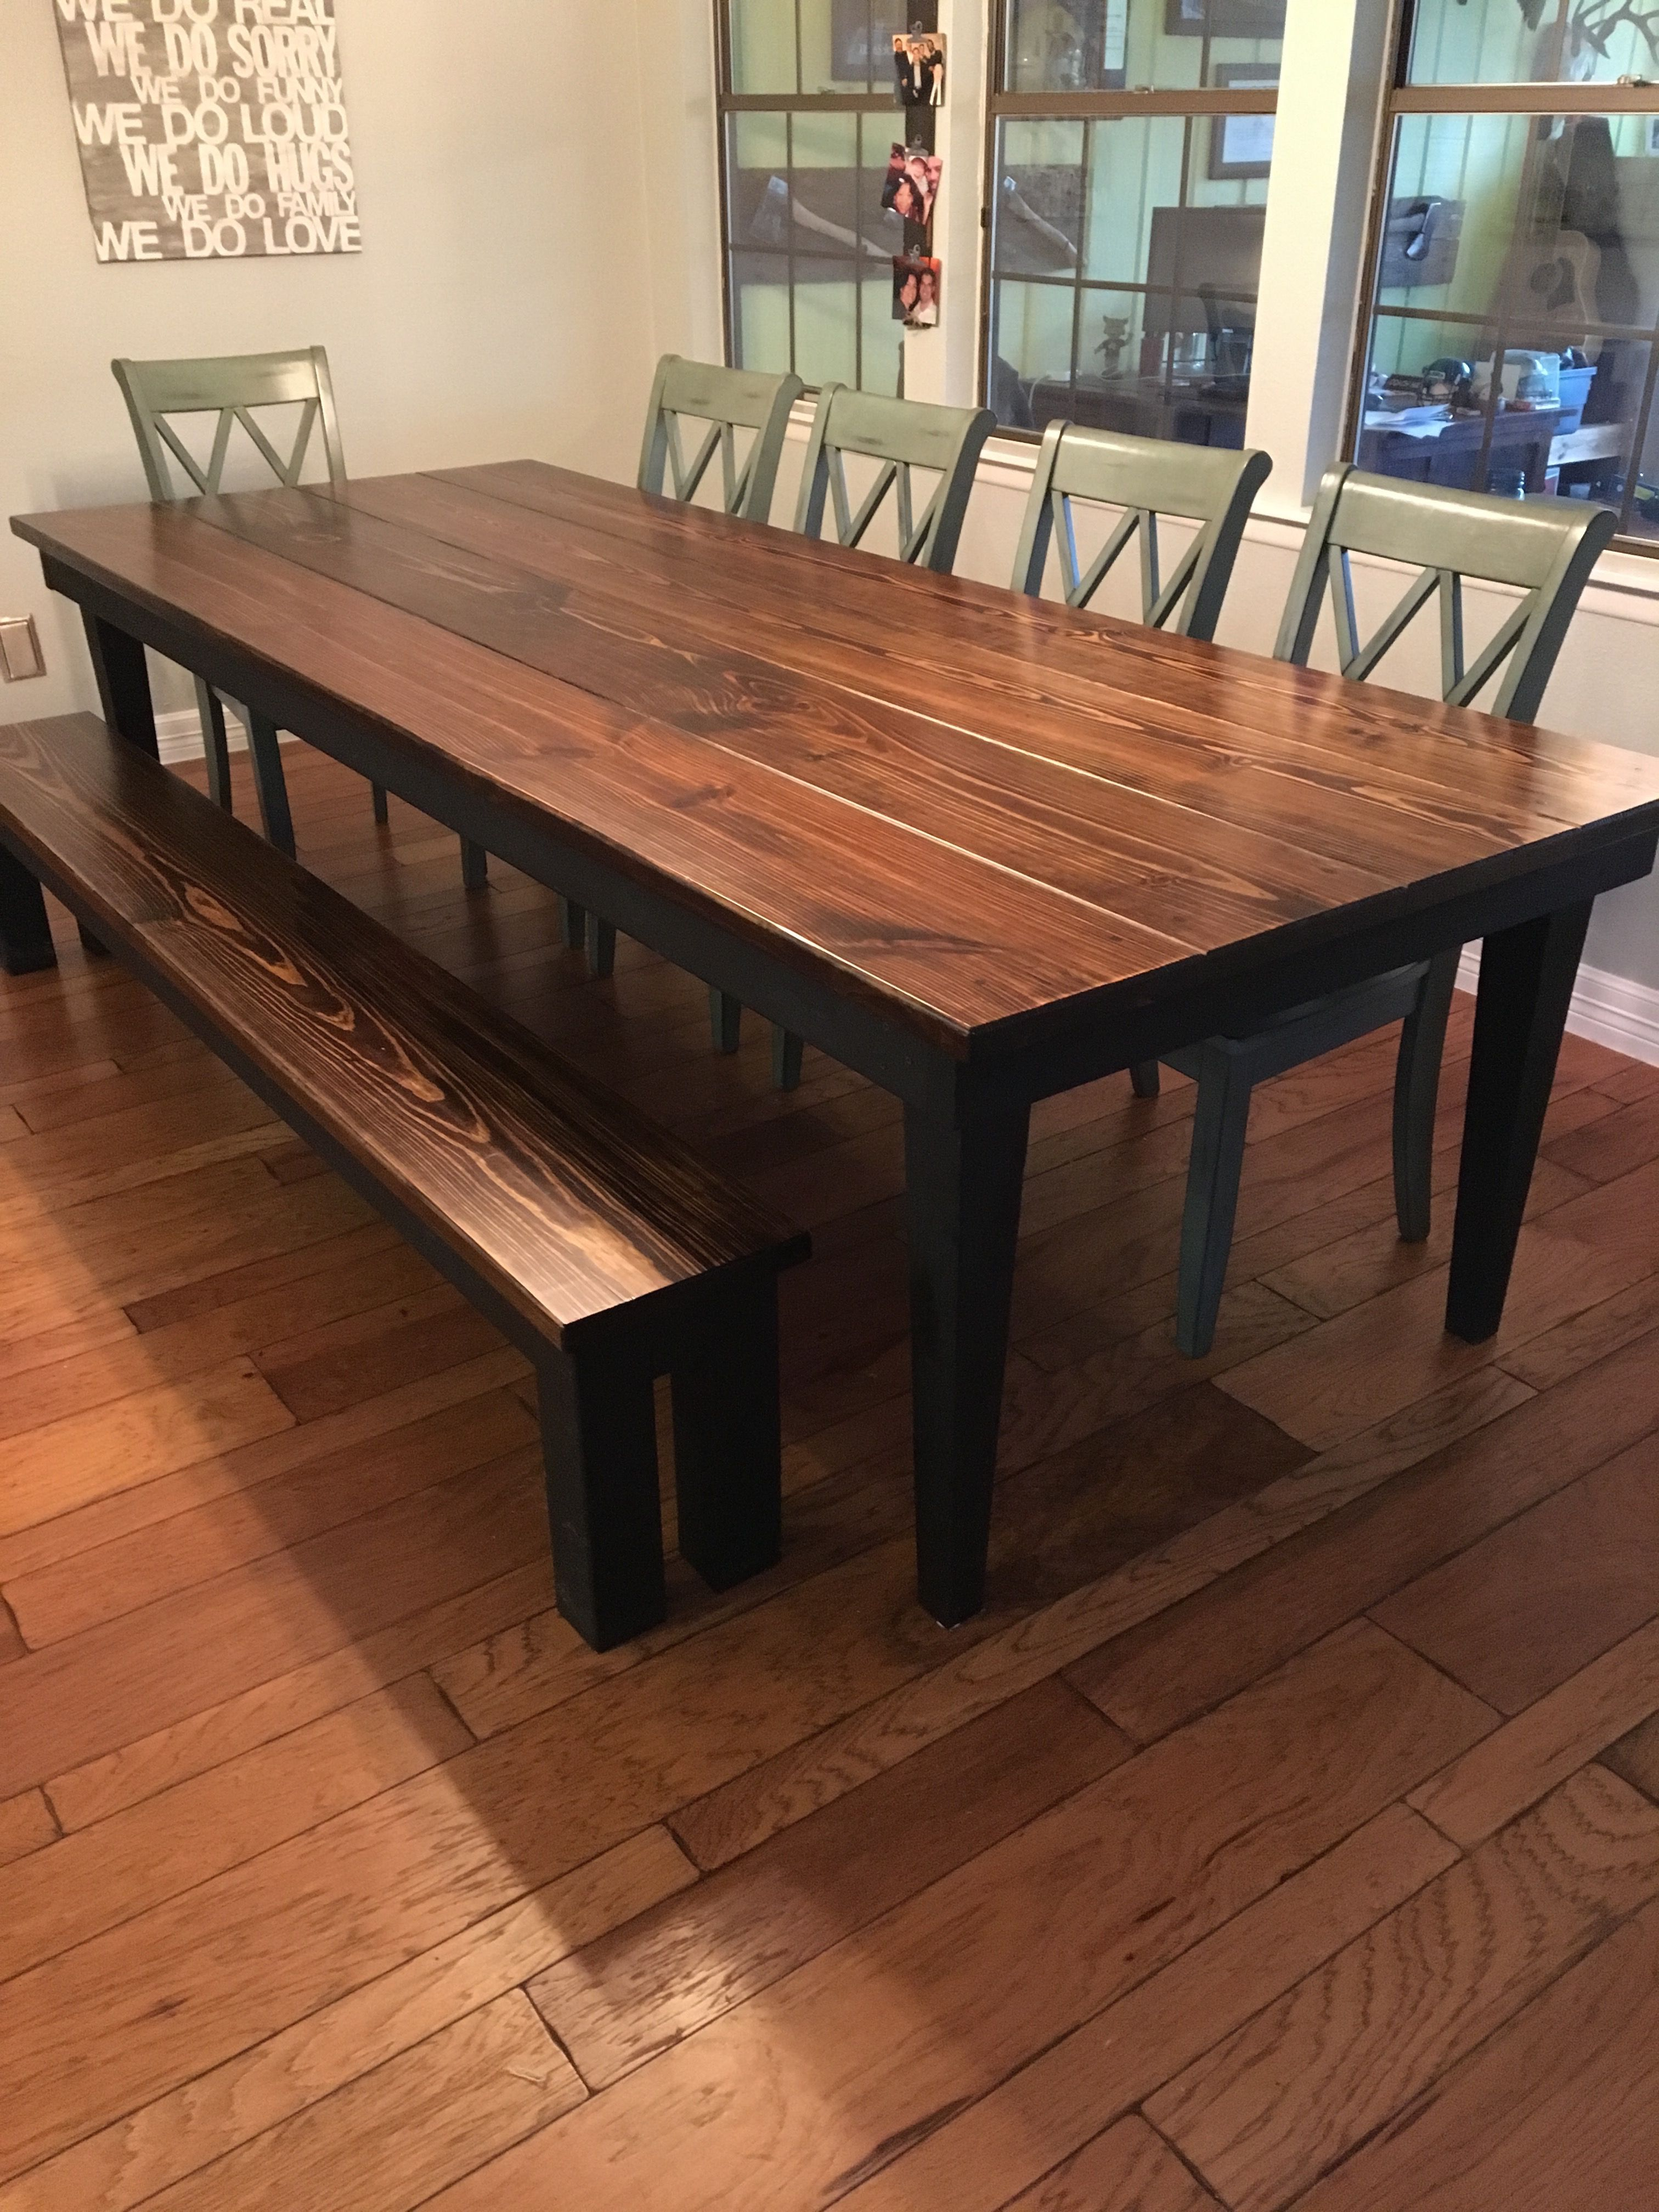 Black Walnut Kitchen Table Booth Ideas James 43james 9 39 X42 Quot Farmhouse With A Traditional Top